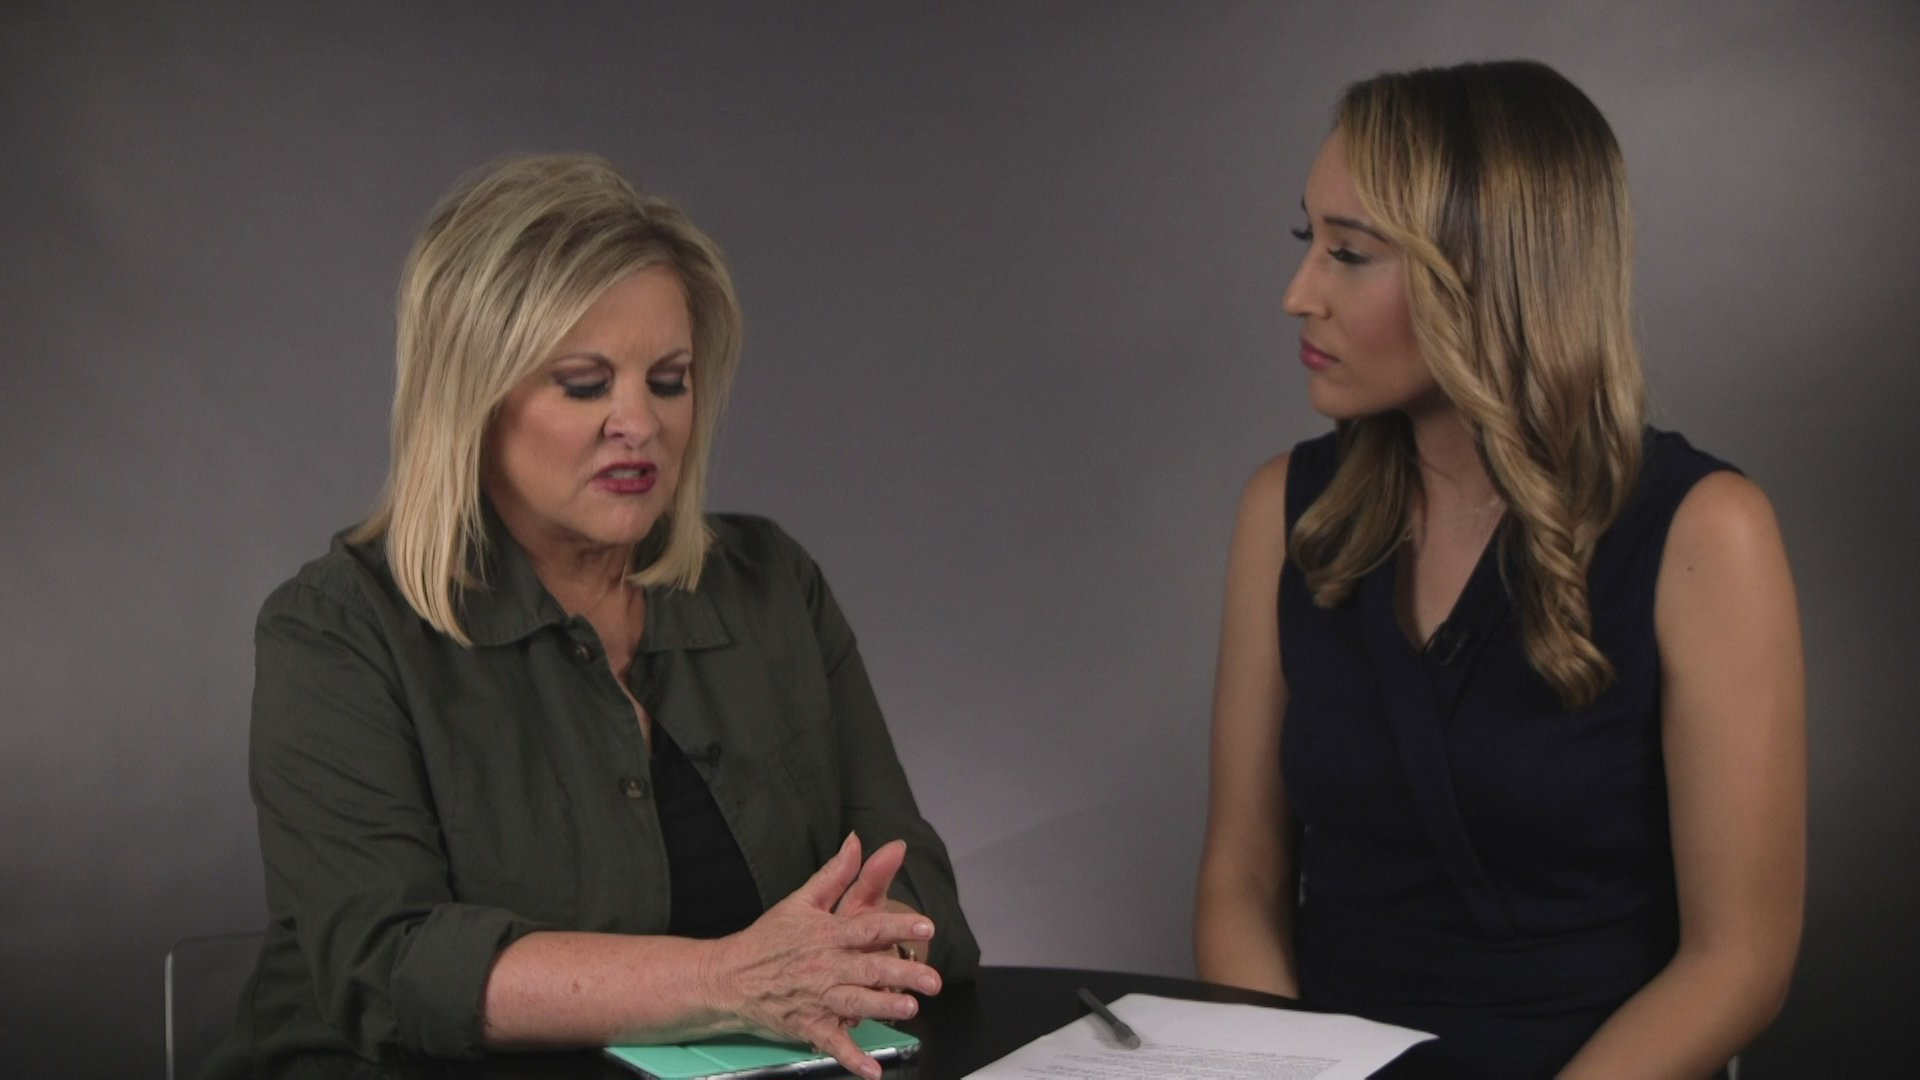 Nancy Grace On Her New Show: 'There Are Thousands Of Cases All Across Our Country Where Victims' Voices Need To Be Heard'